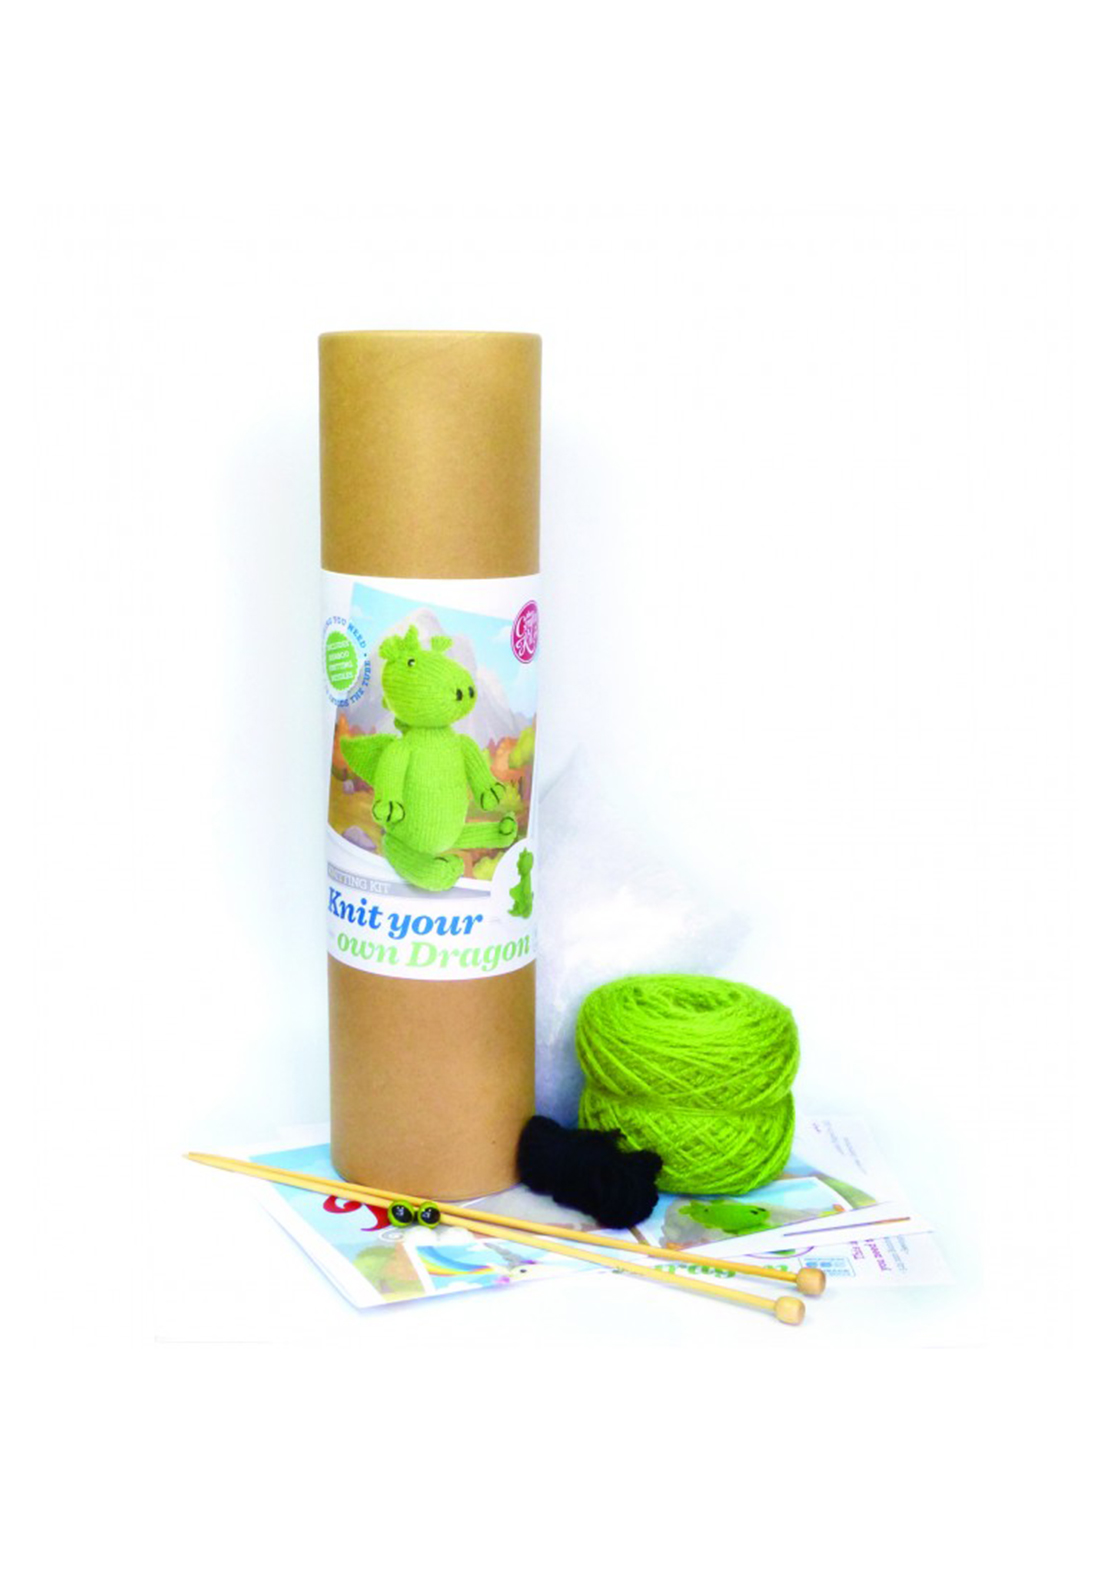 The Crafty Kit Co. Knit Your Own Dragon Sewing Kit